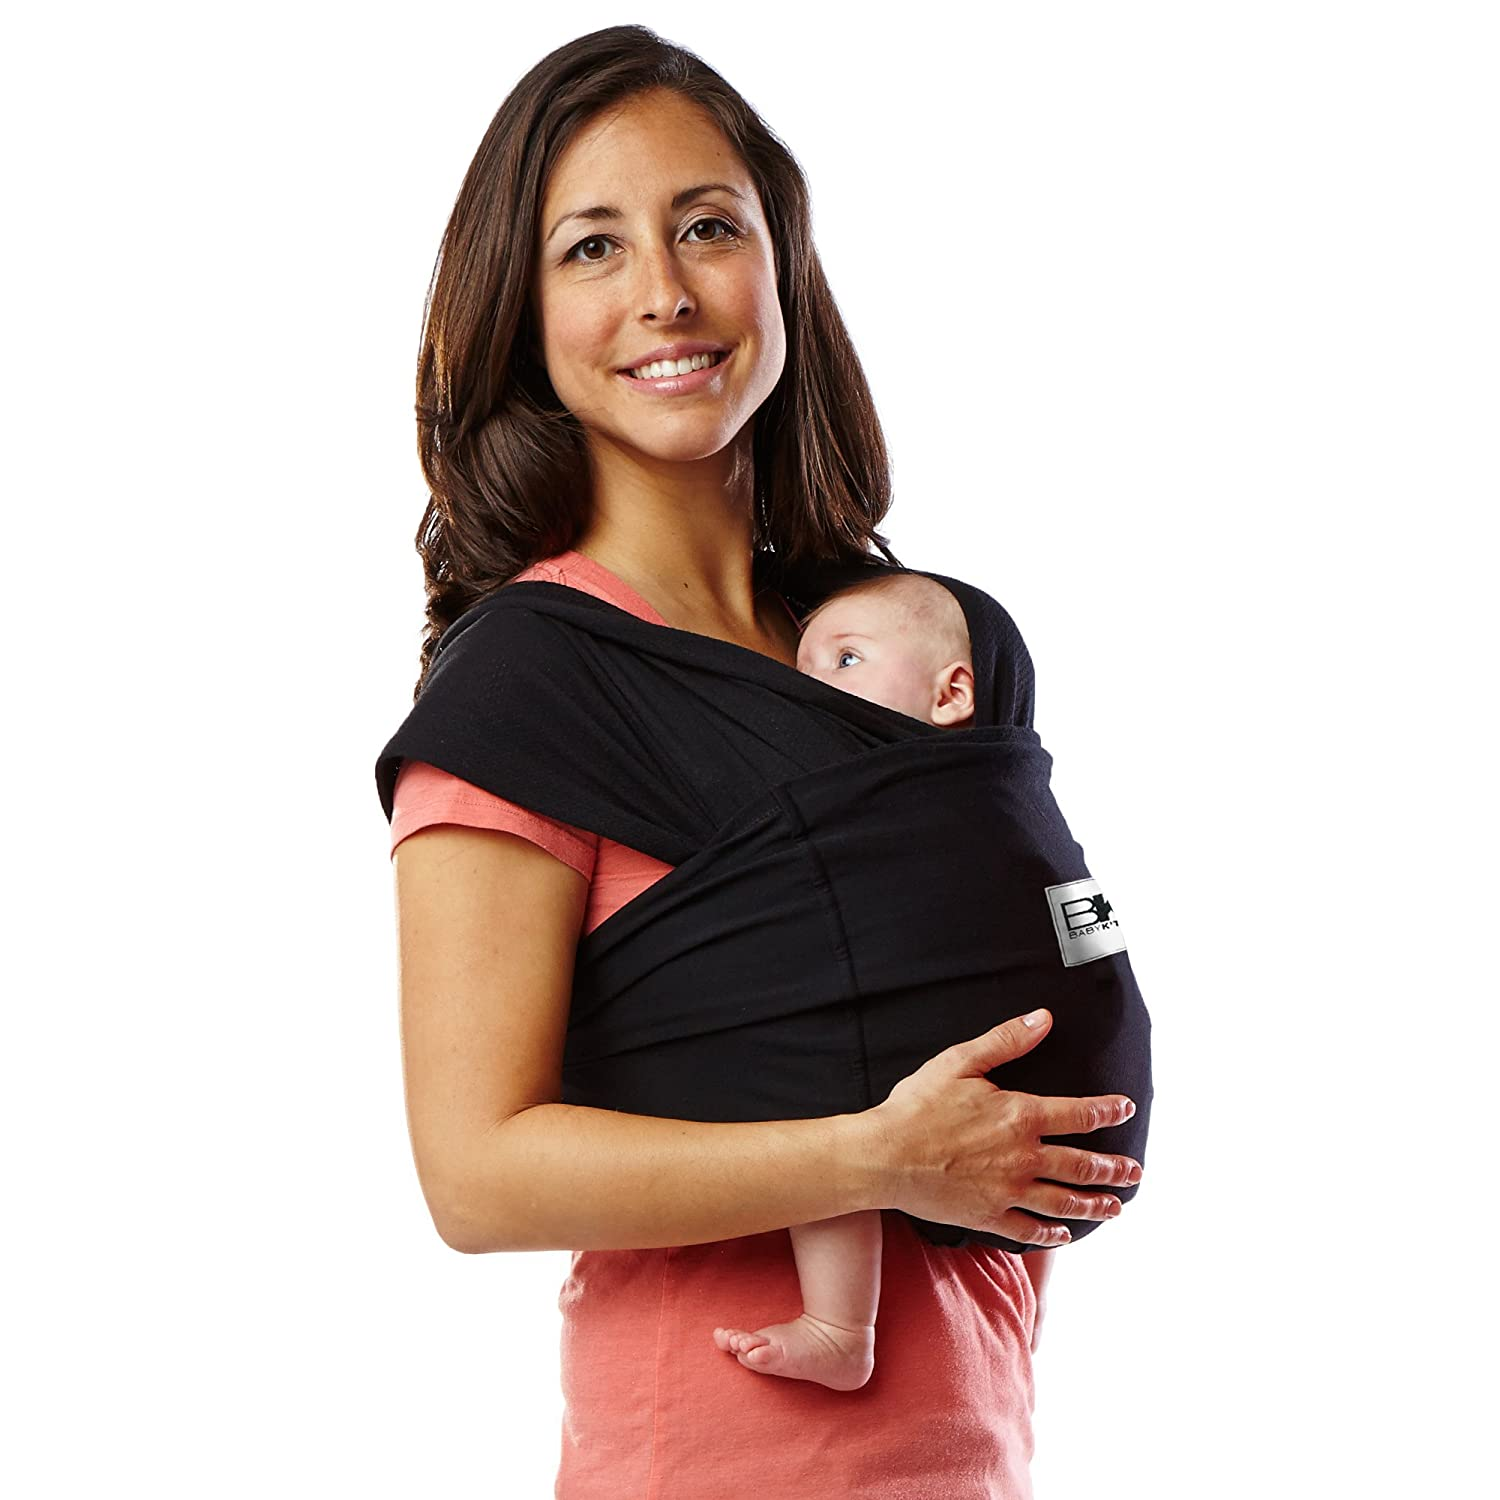 Baby K'Tan Baby Cotton Carrier (Medium, Black) Baby K'Tan BKBC-BL-M